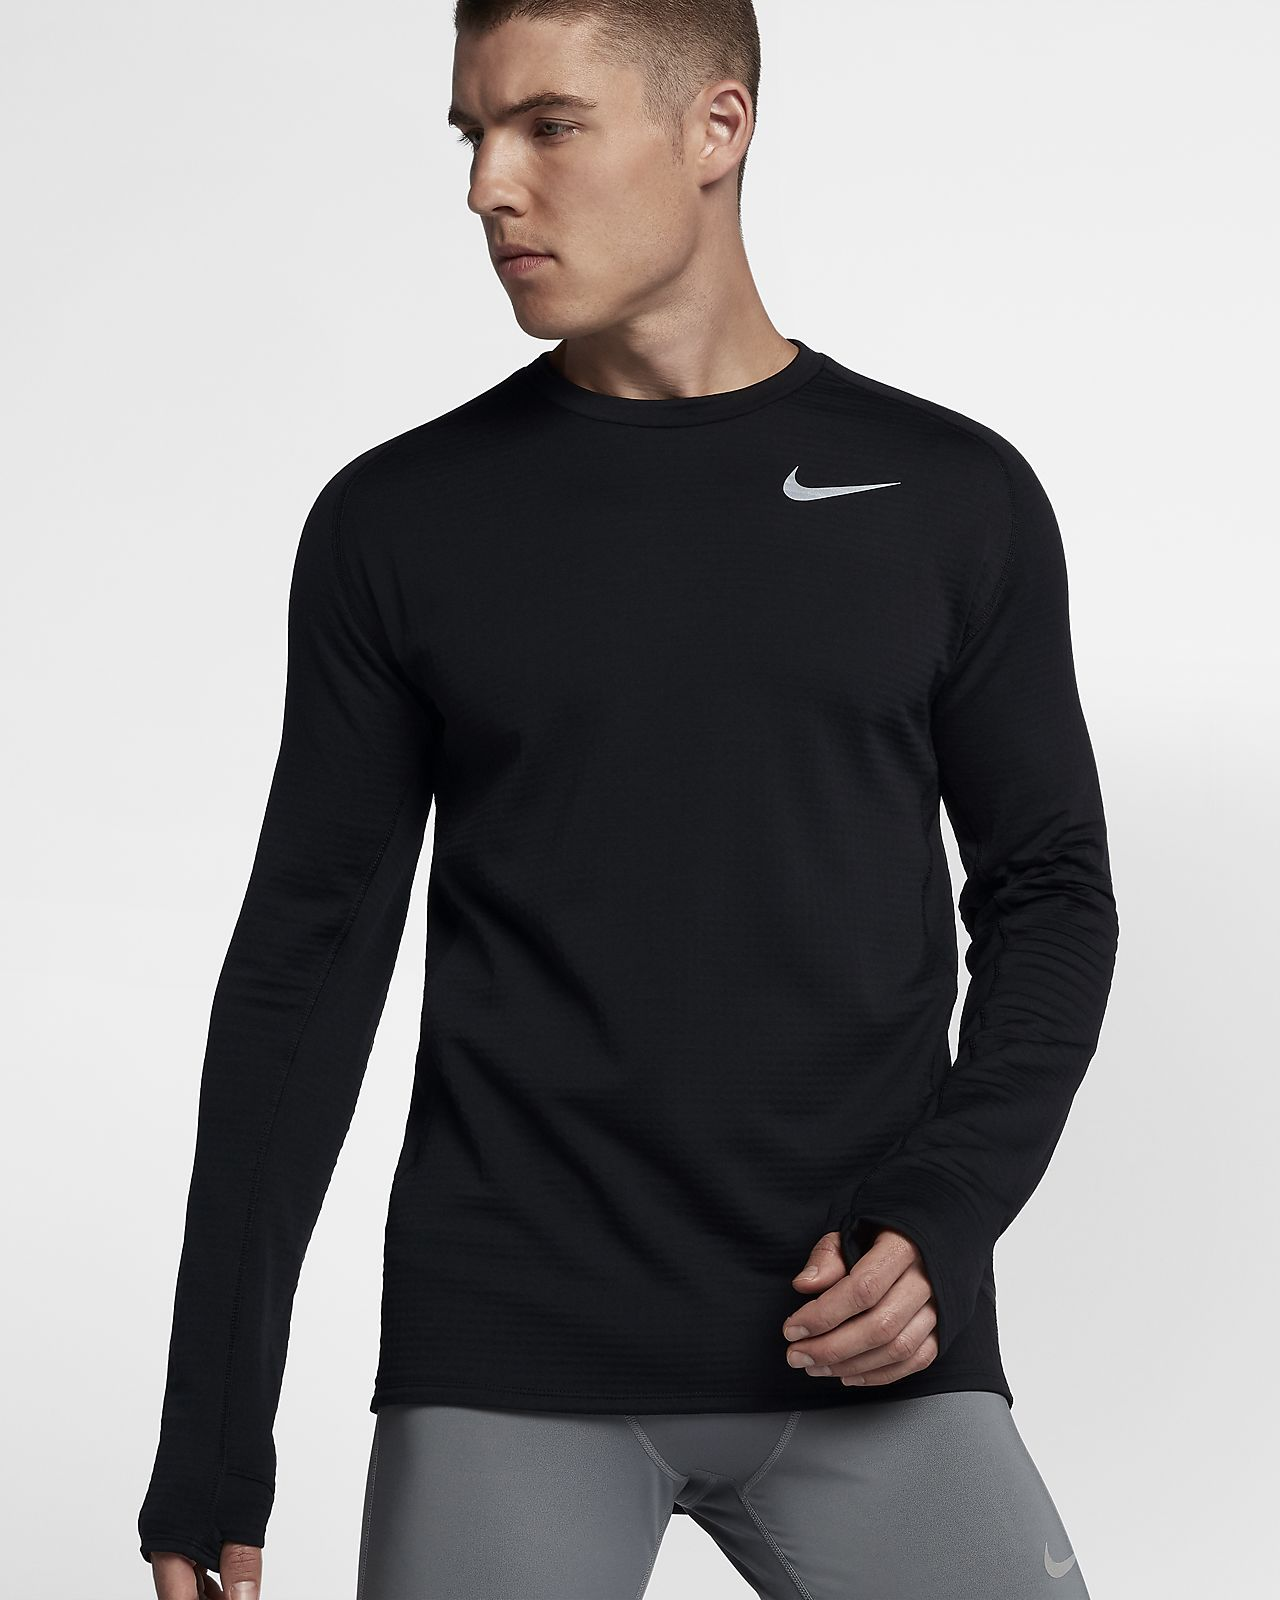 02110e43a04 Nike Therma-Sphere Element Men s Long-Sleeve Running Top. Nike.com AE